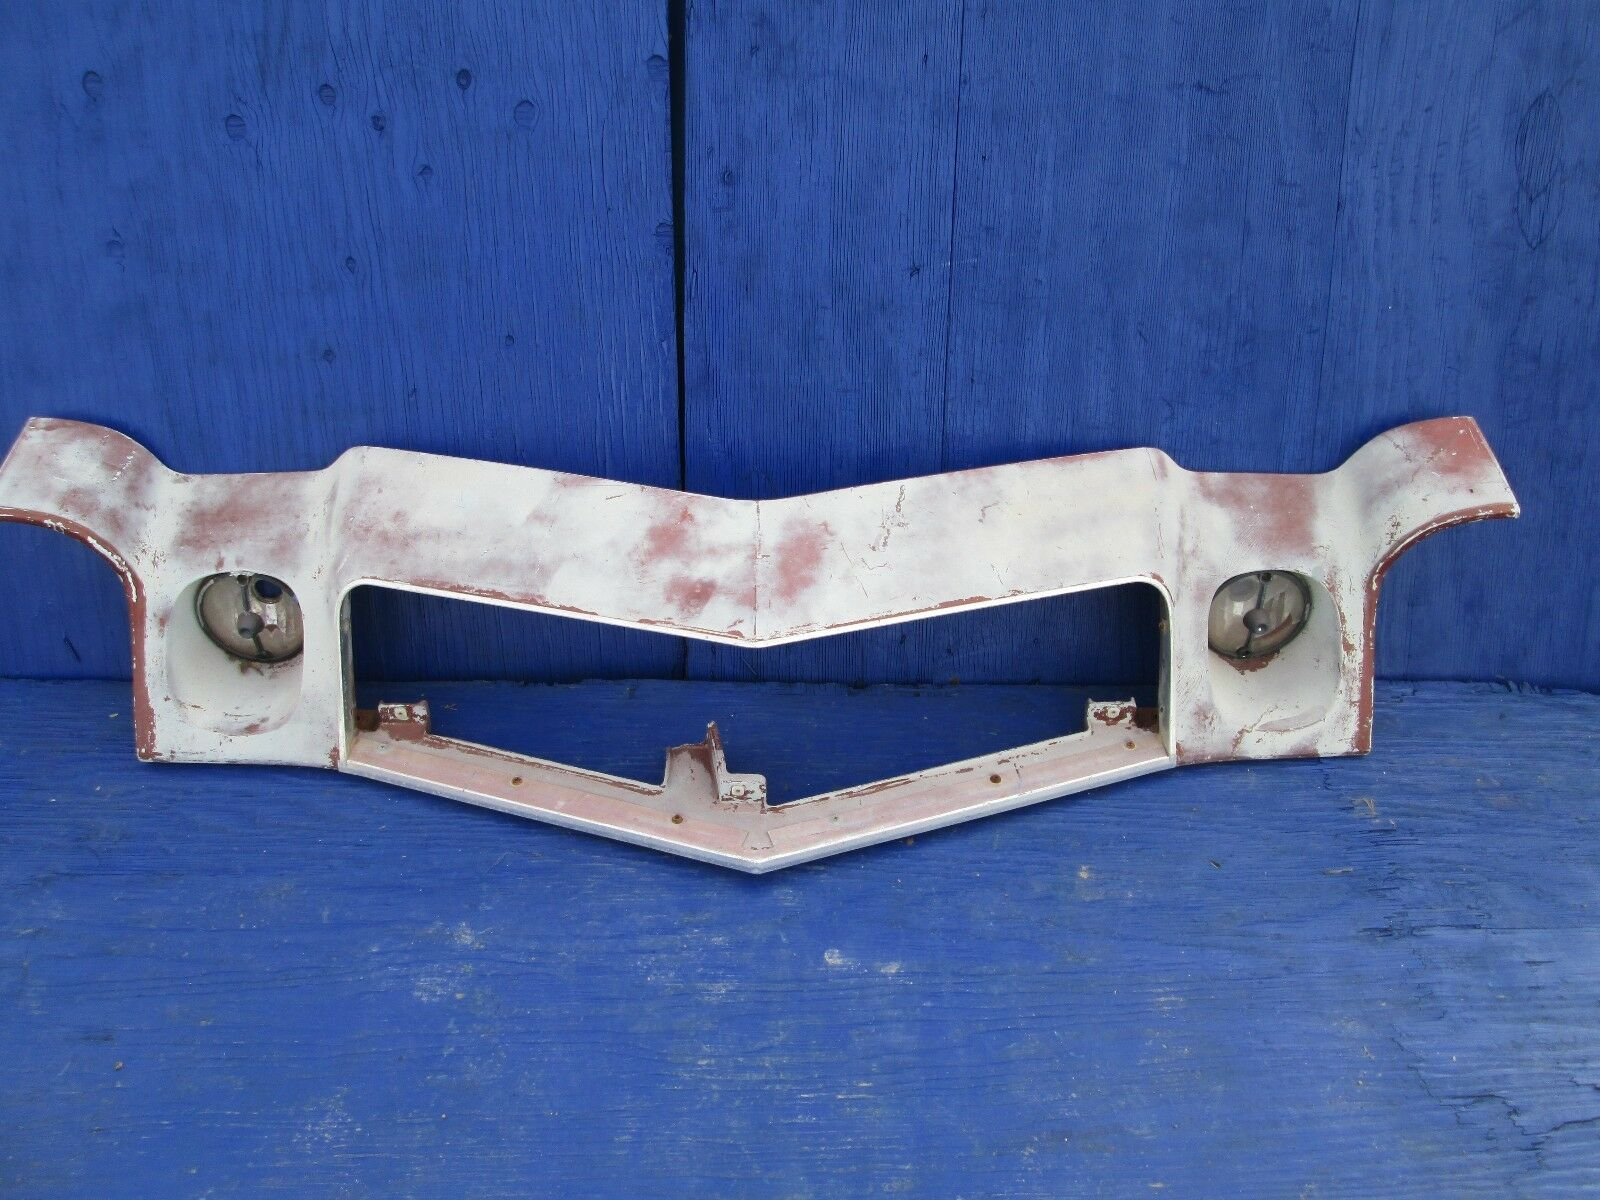 1974 1975 1976 1977 CHEVY CAMARO  GRILLE HEADER PANEL WITH PARK LAMP OEM# 347568